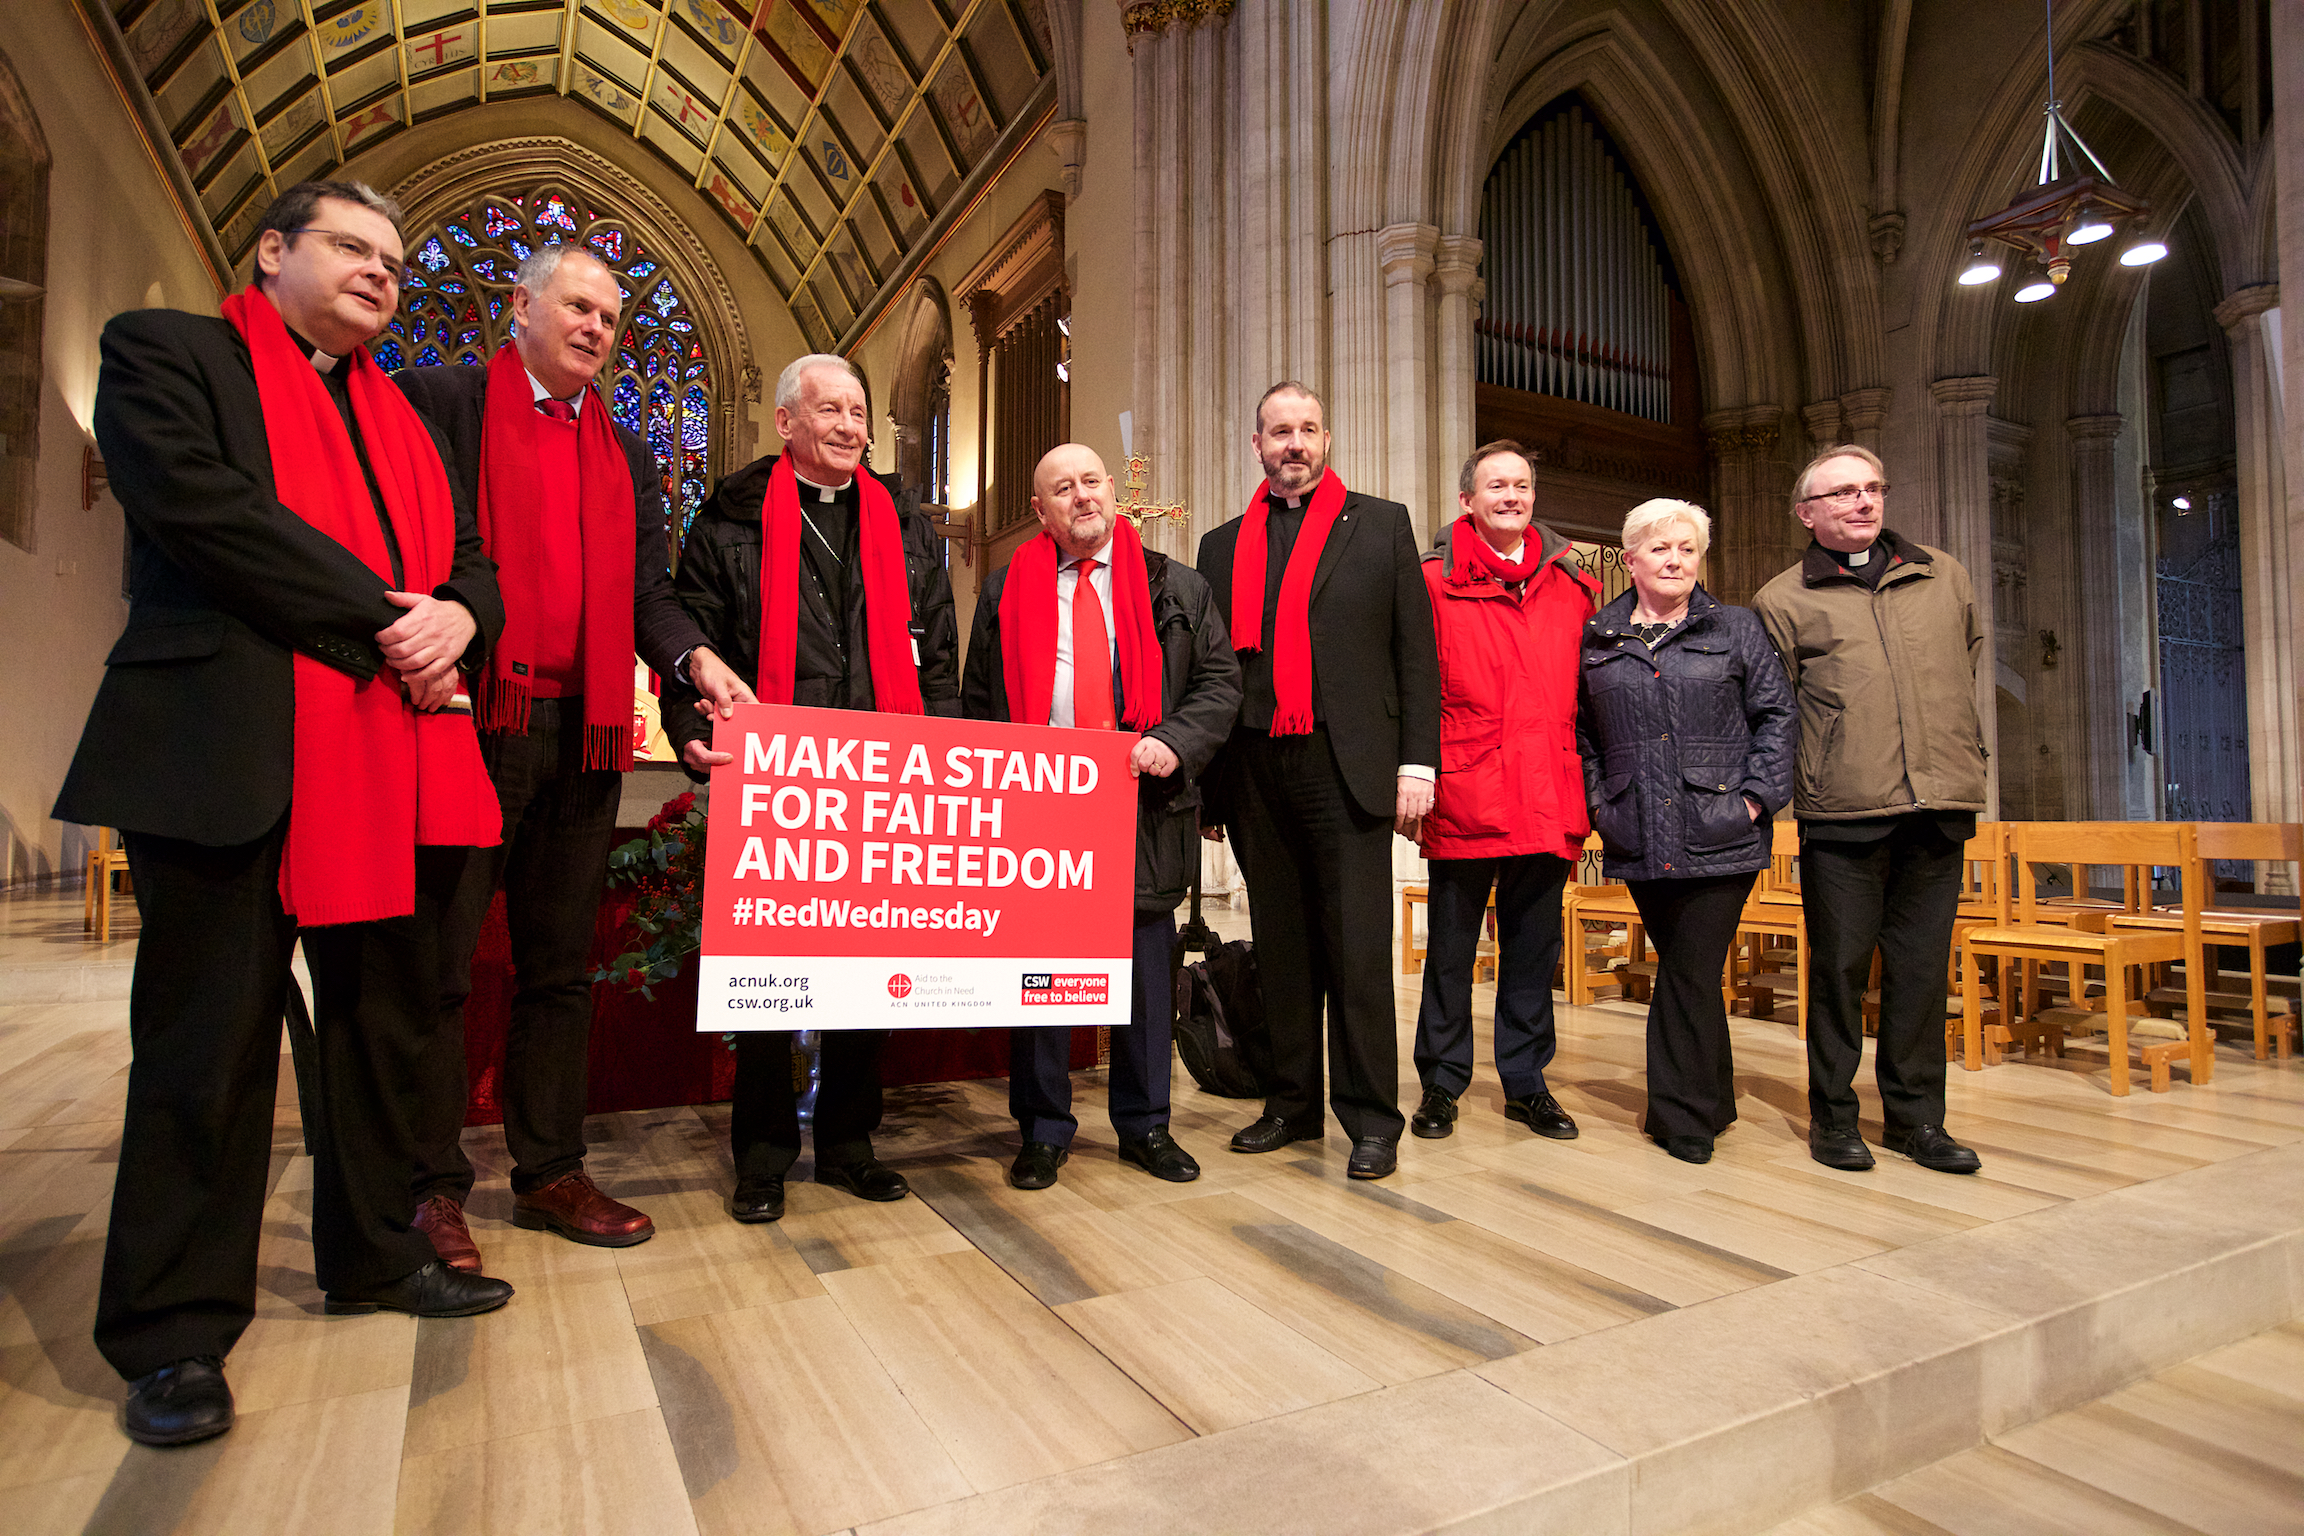 Peter Smith, Archbishop of Southwark; Canon Richard Hearn meet the #RedWednesday team. St George's Cathedral, London.